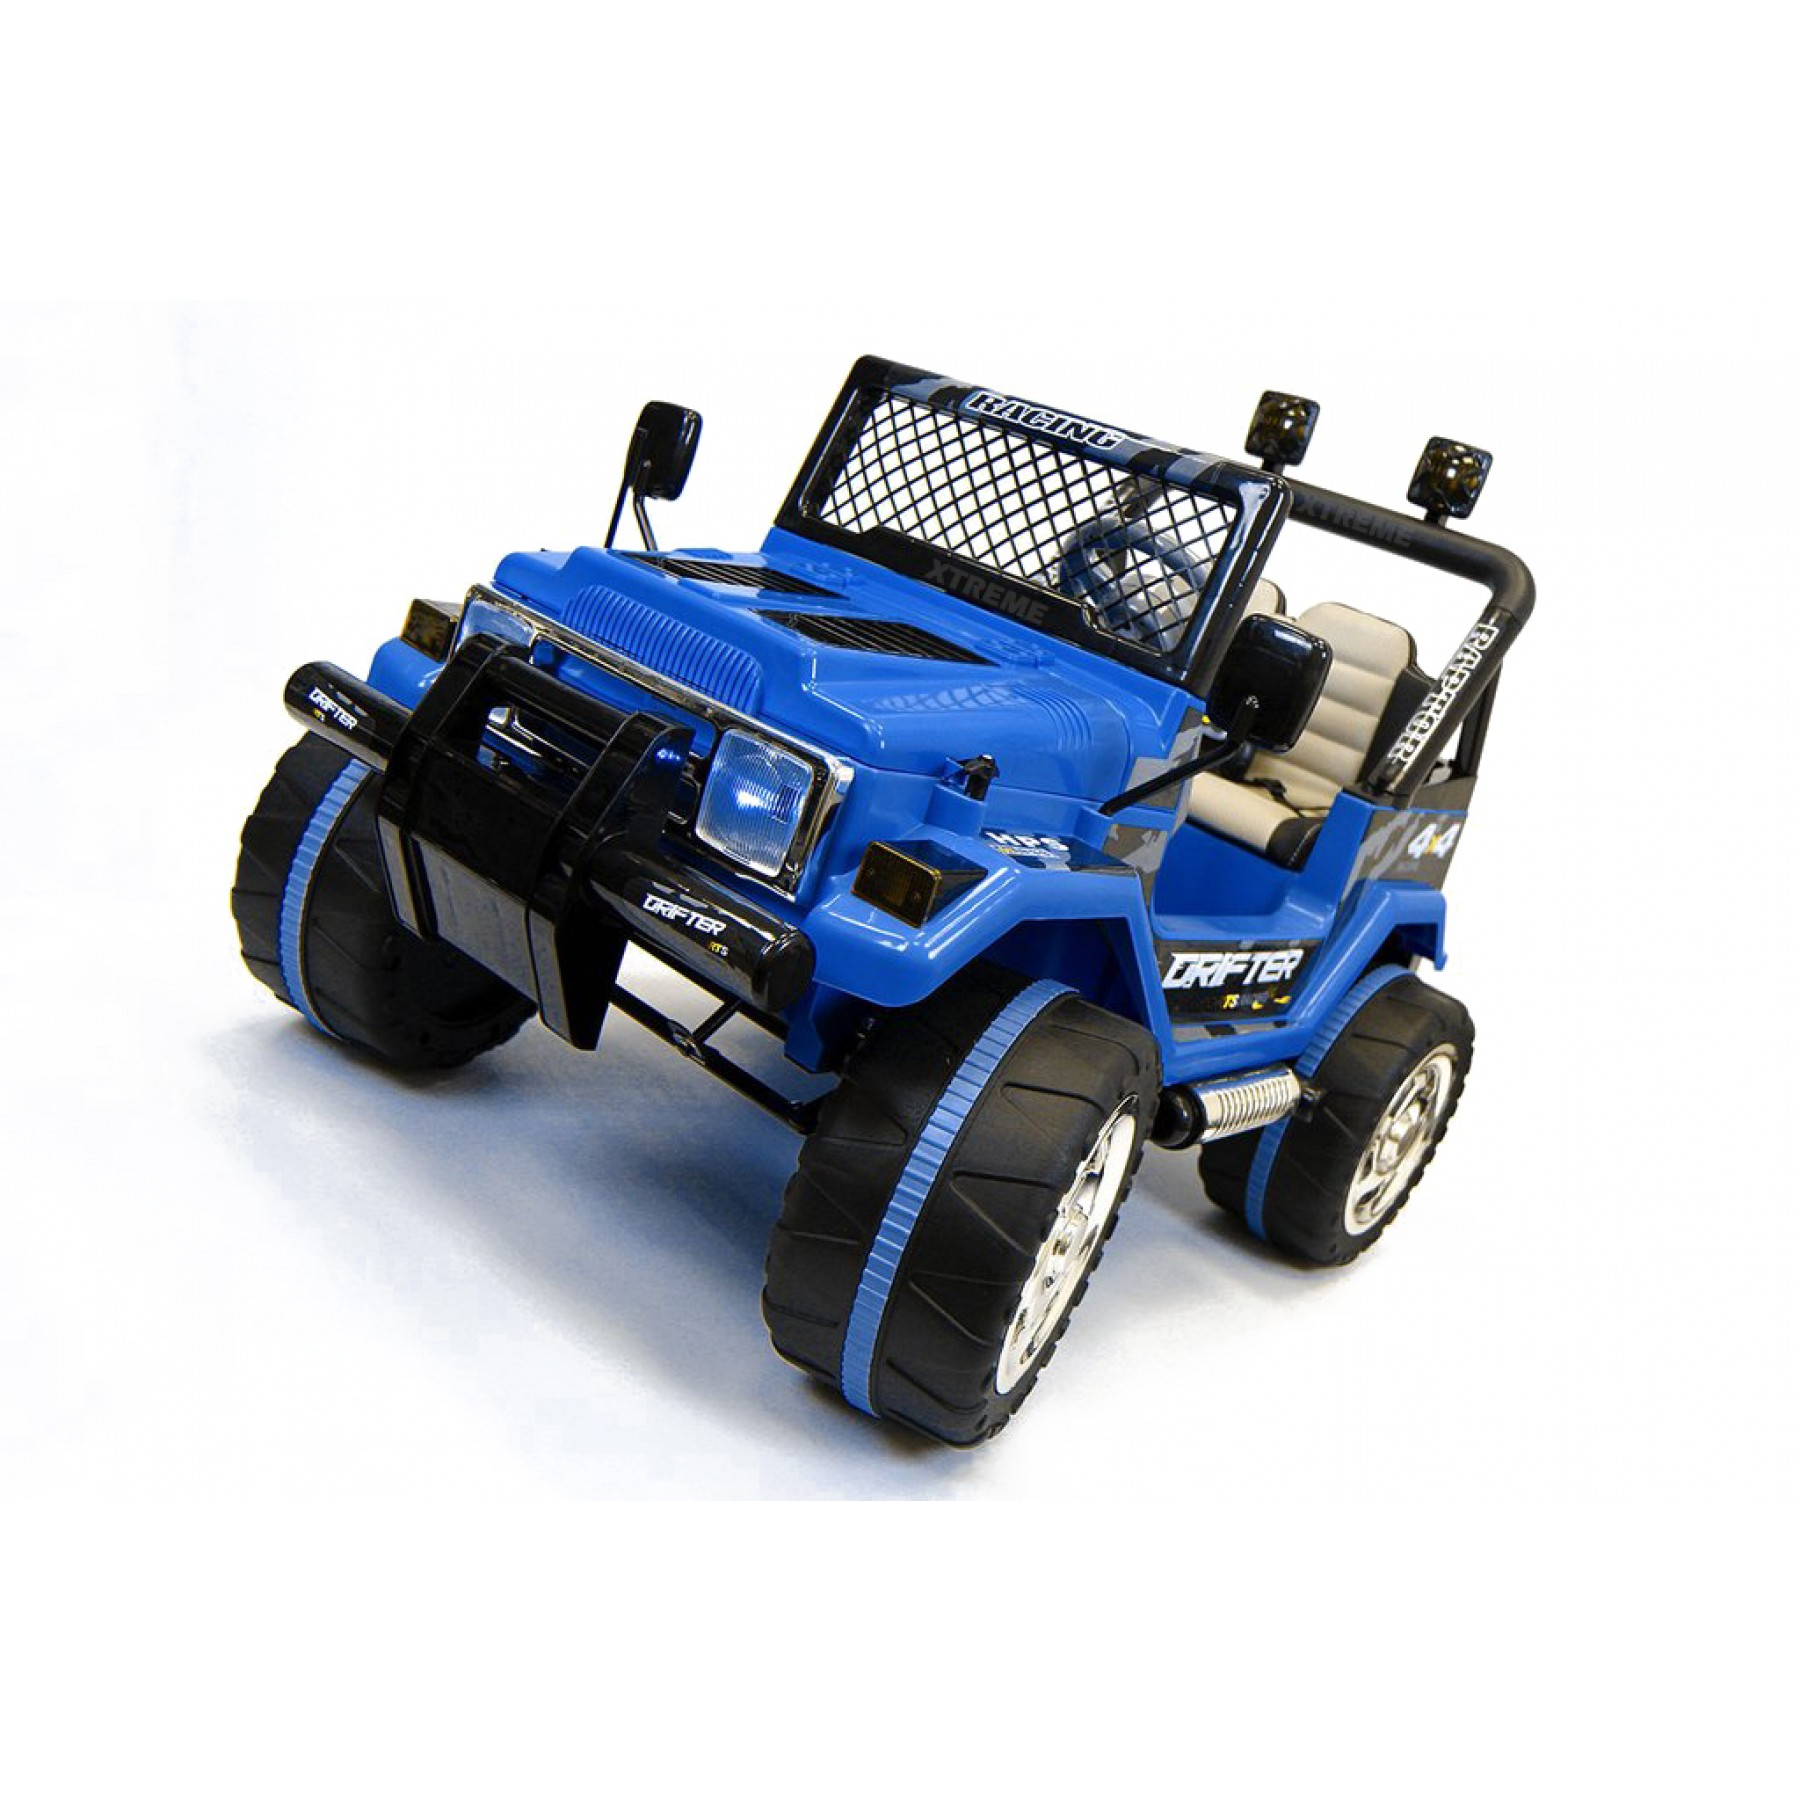 Xtreme 12v Ride on Off-Road Jeep in Blue